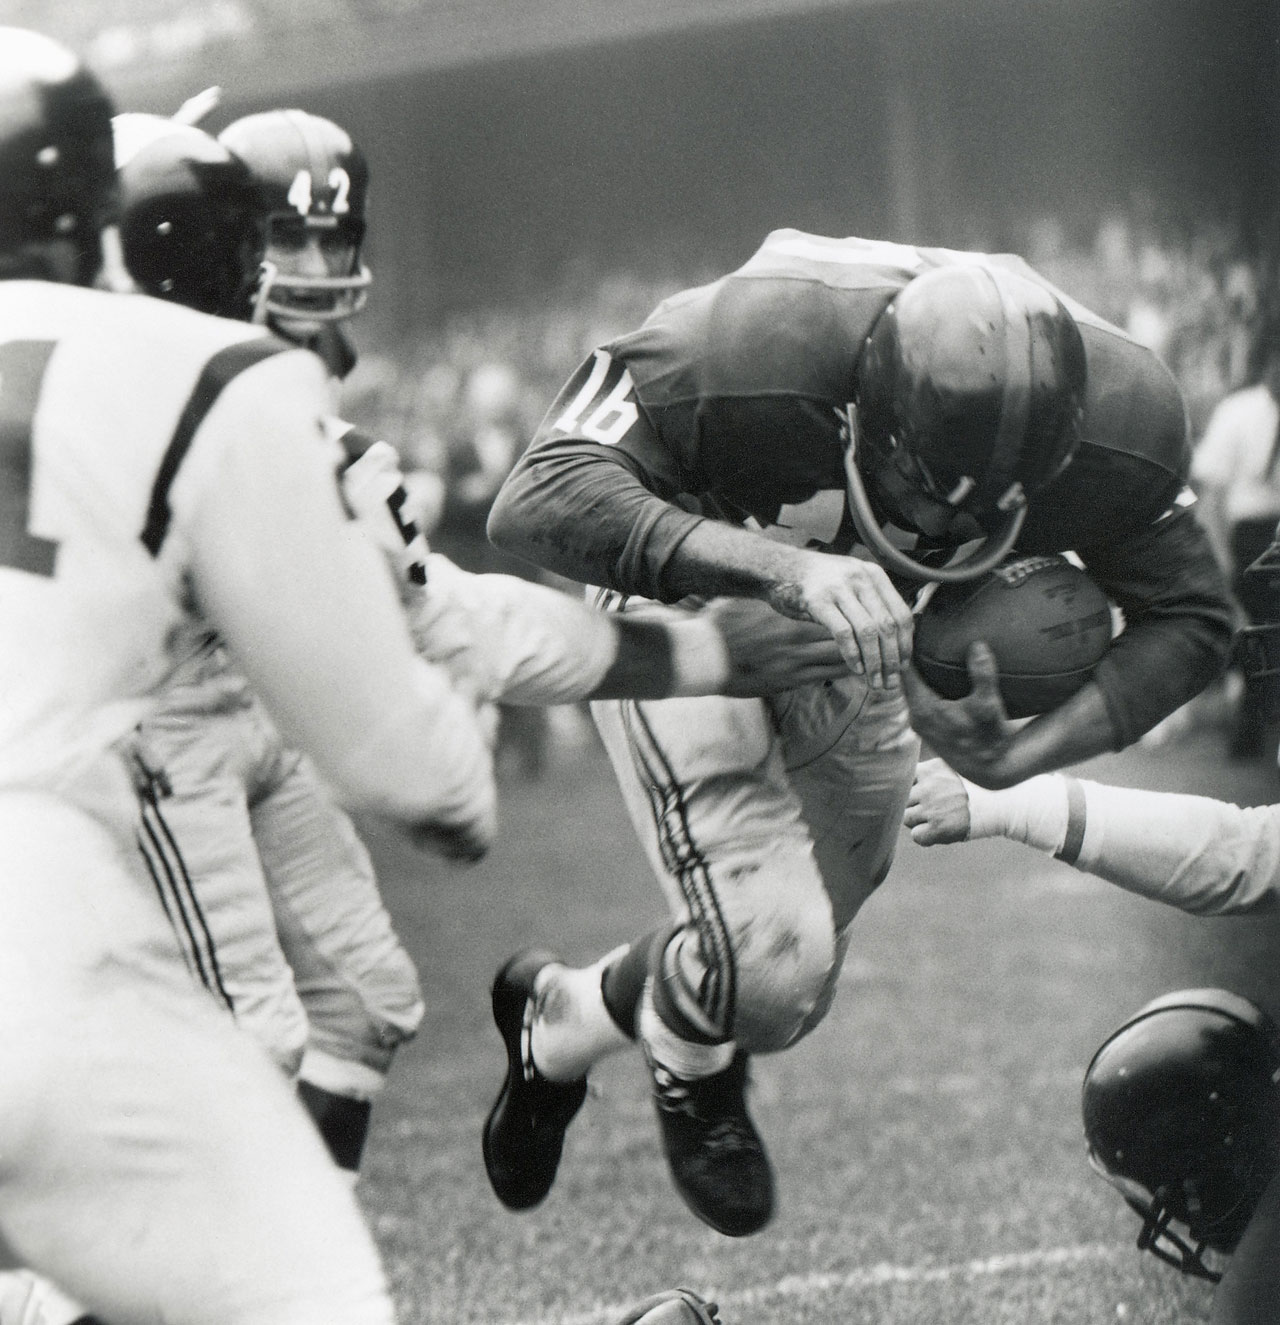 Frank Gifford scores a touchdown during a game against the Washington Redskins at Yankee Stadium in October 1960.